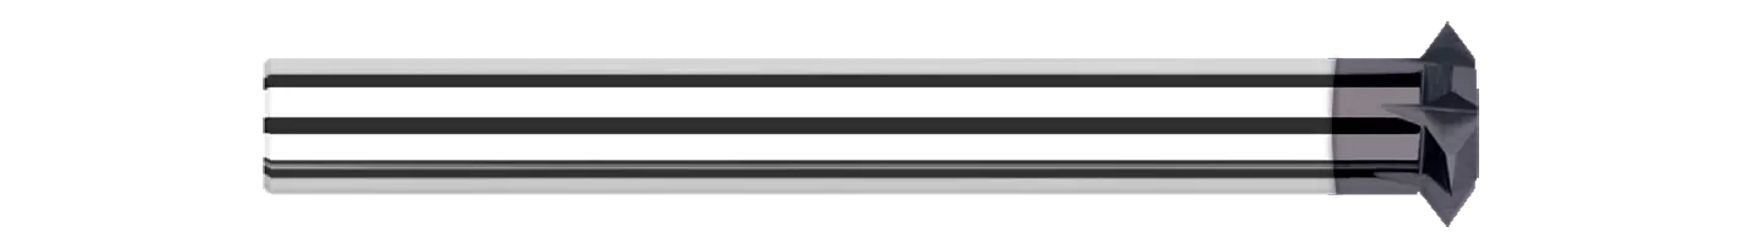 Double Angle Shank Cutters - Pointed - Reduced Shank